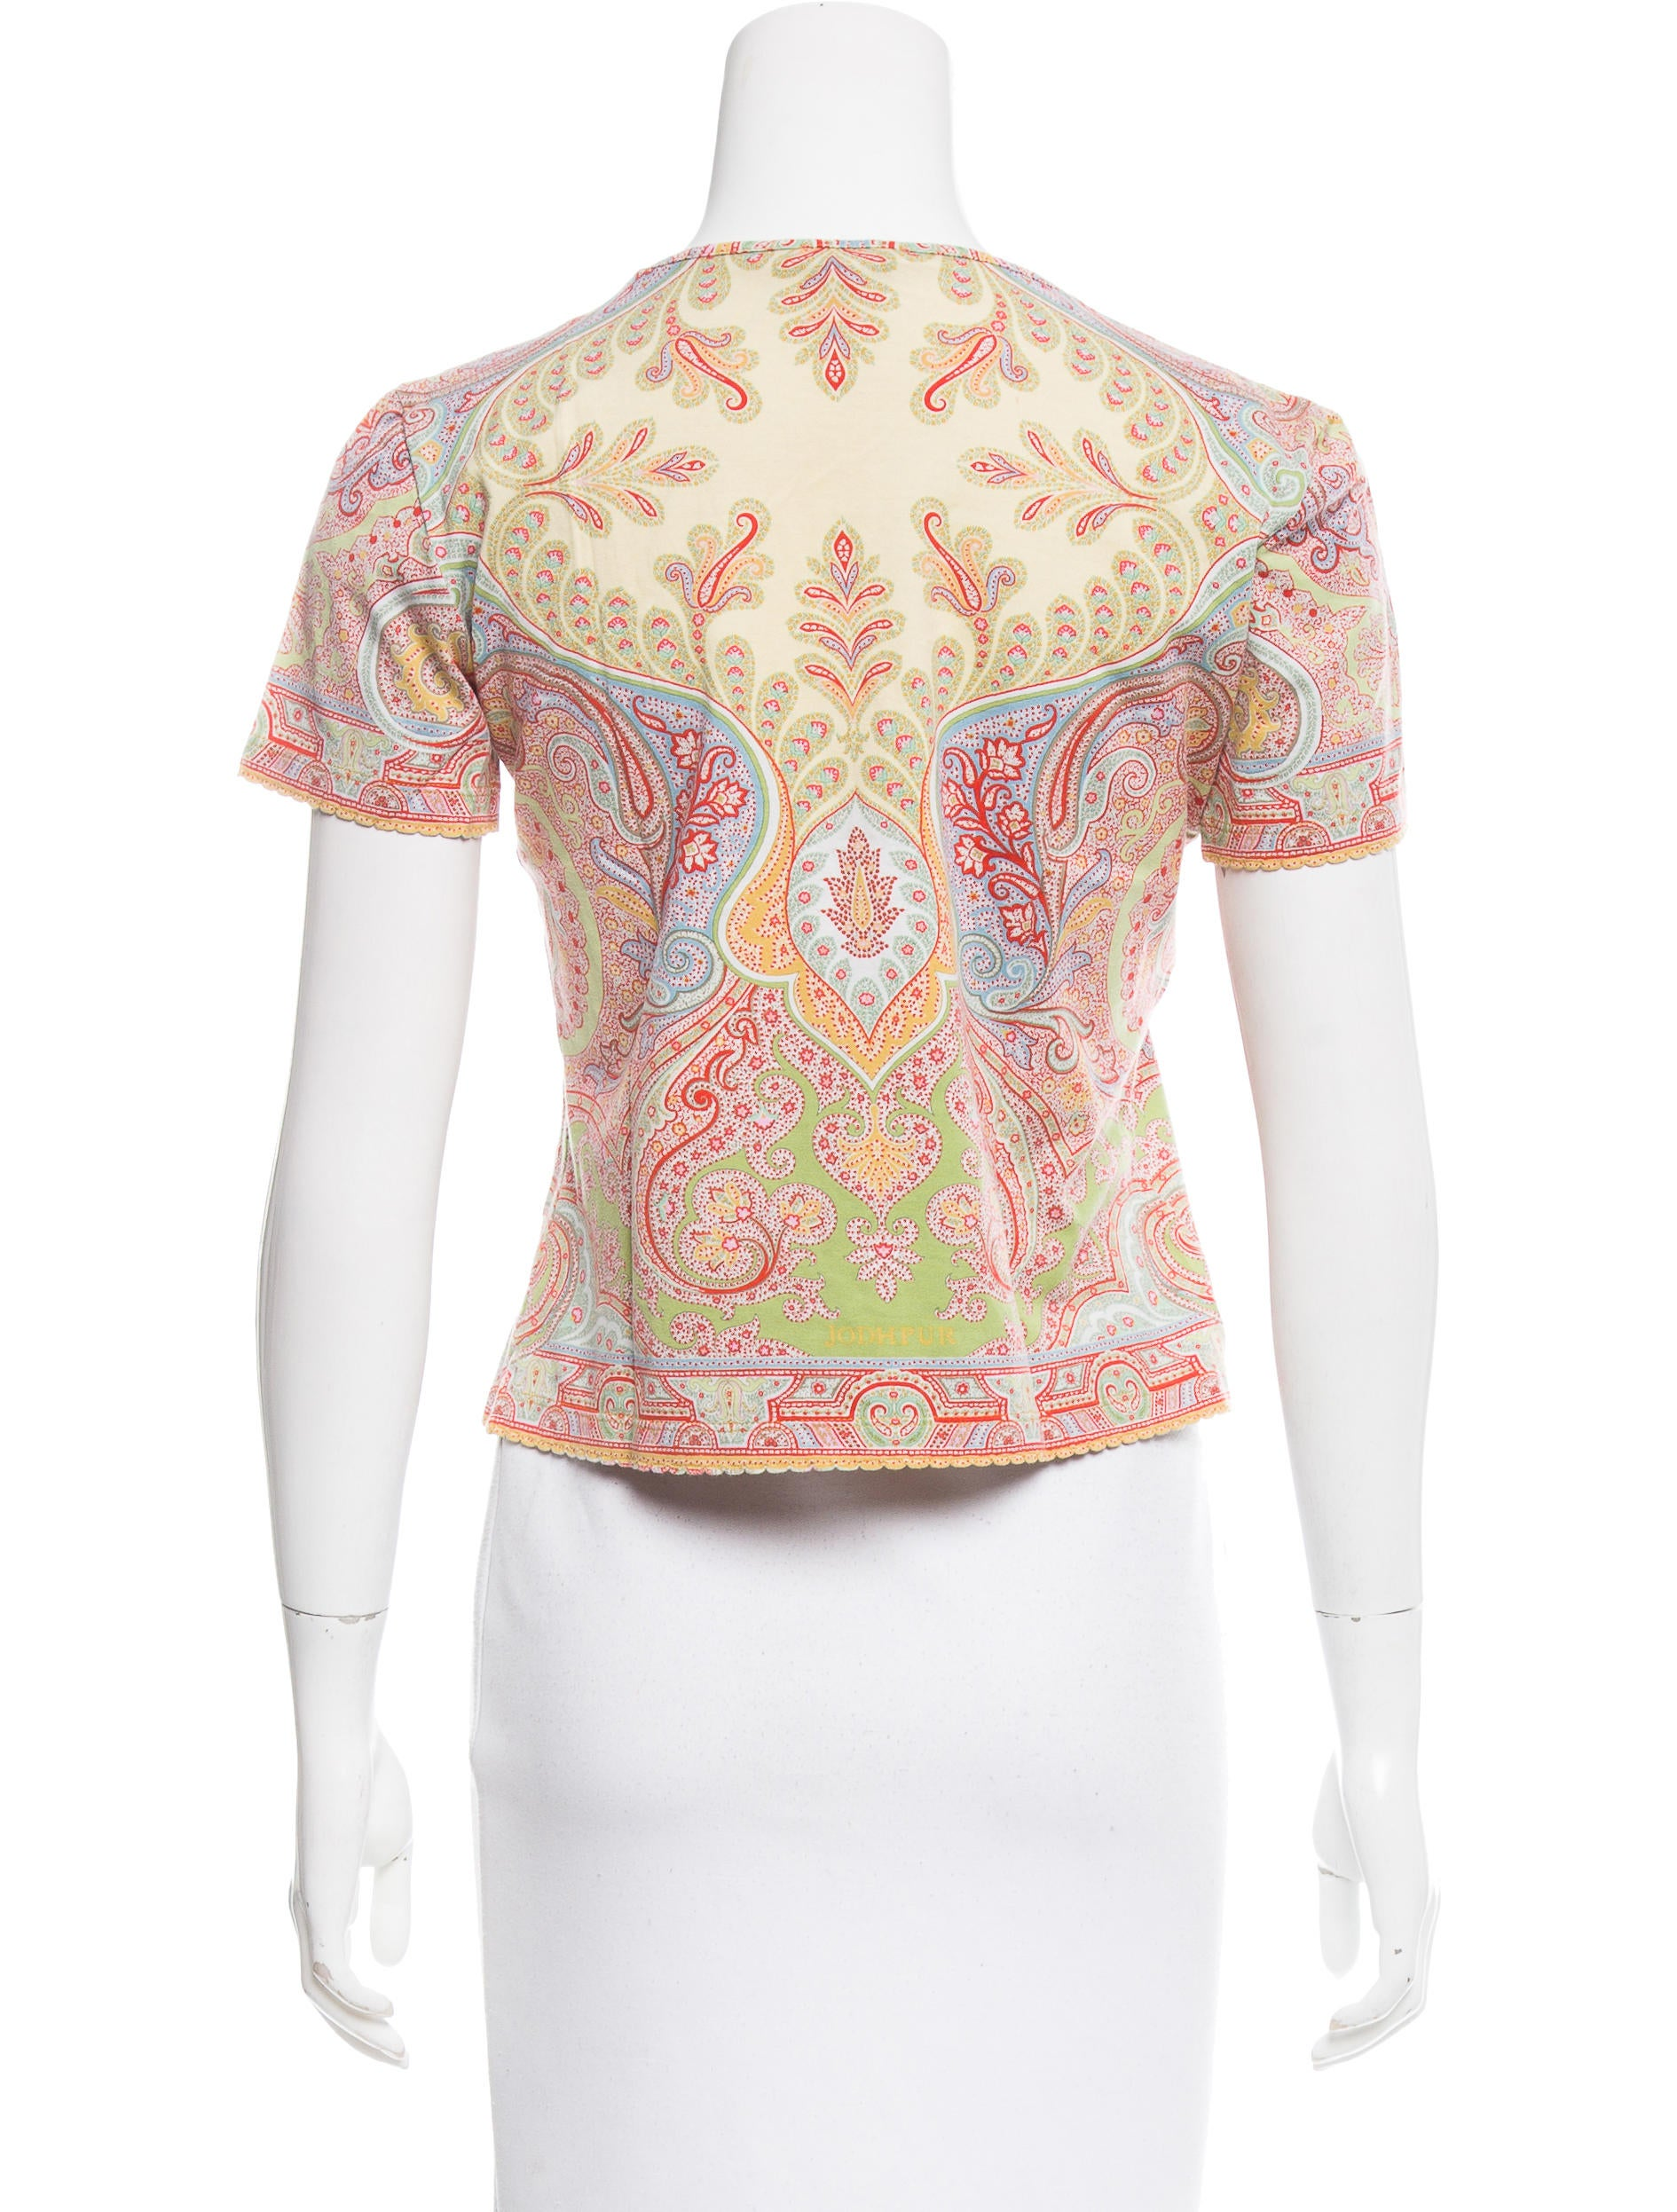 Etro printed crew neck t shirt clothing etr49965 the for Collar t shirt printing